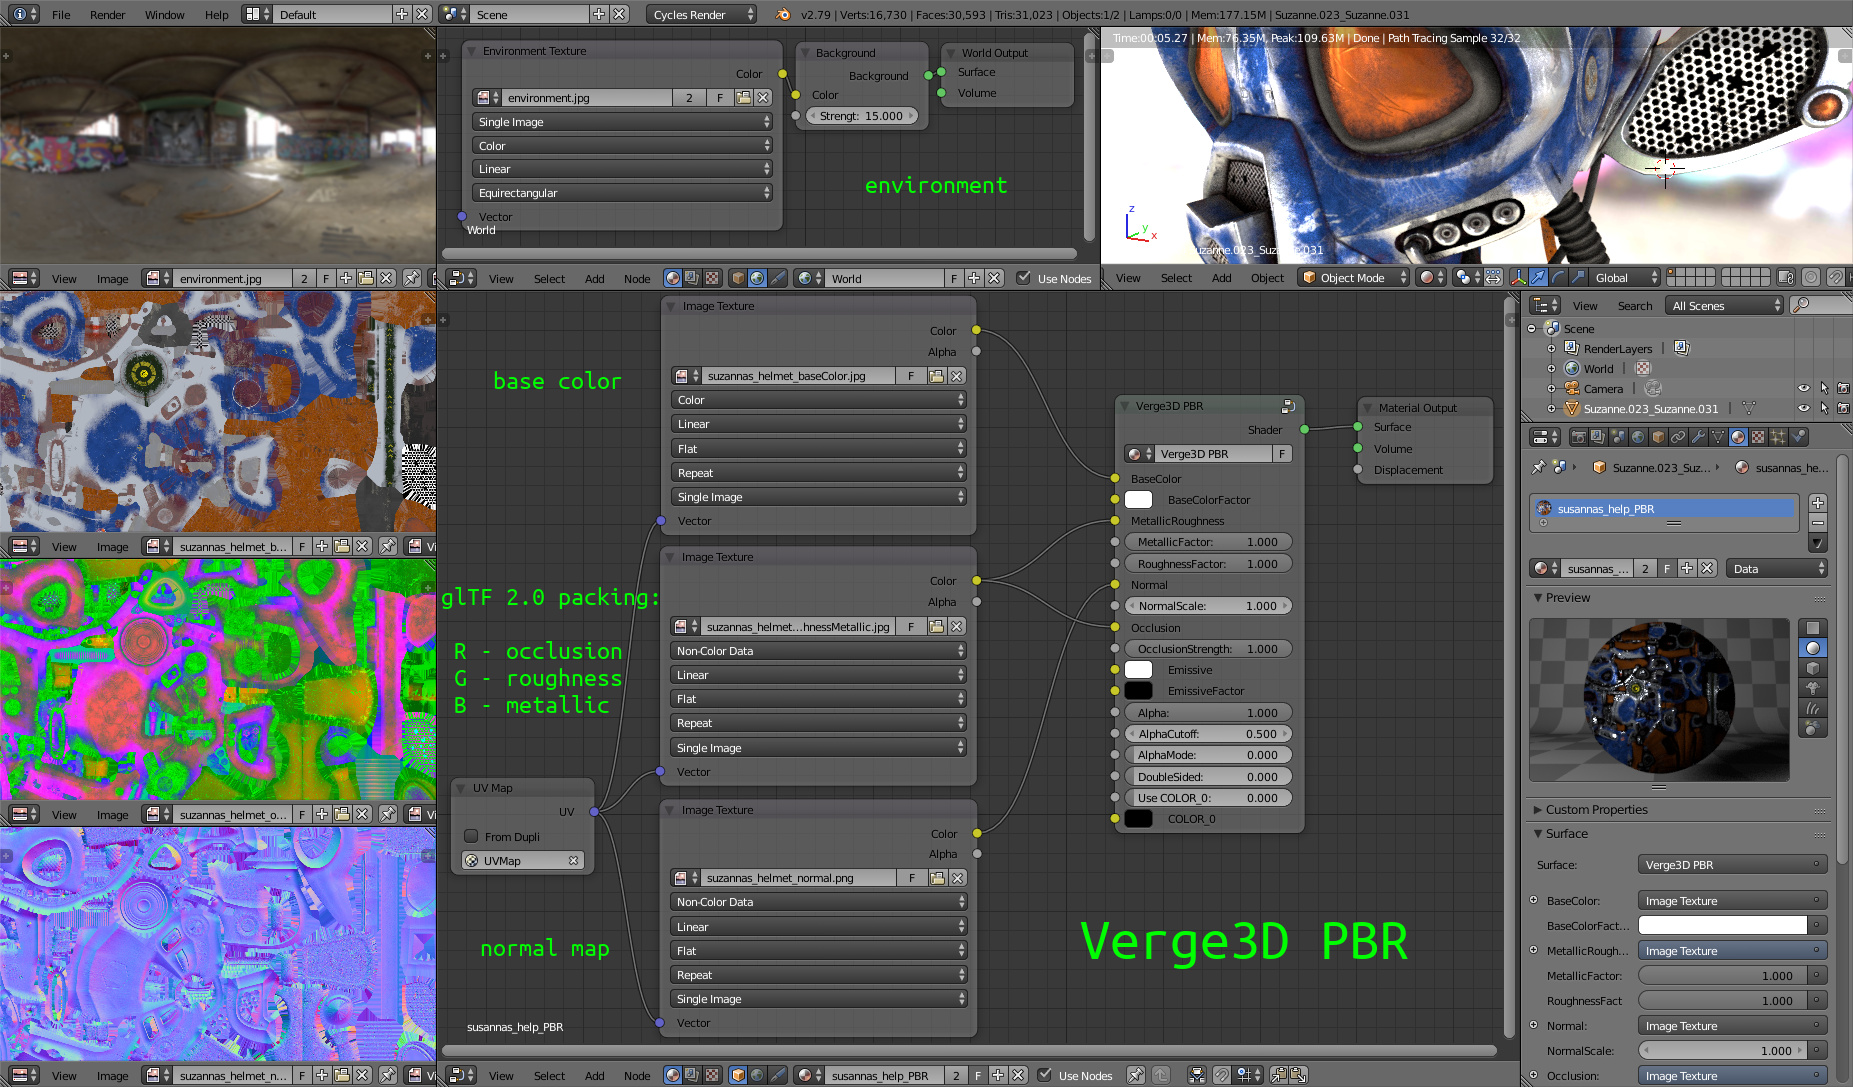 Verge3D PBR system explained in a single pic.